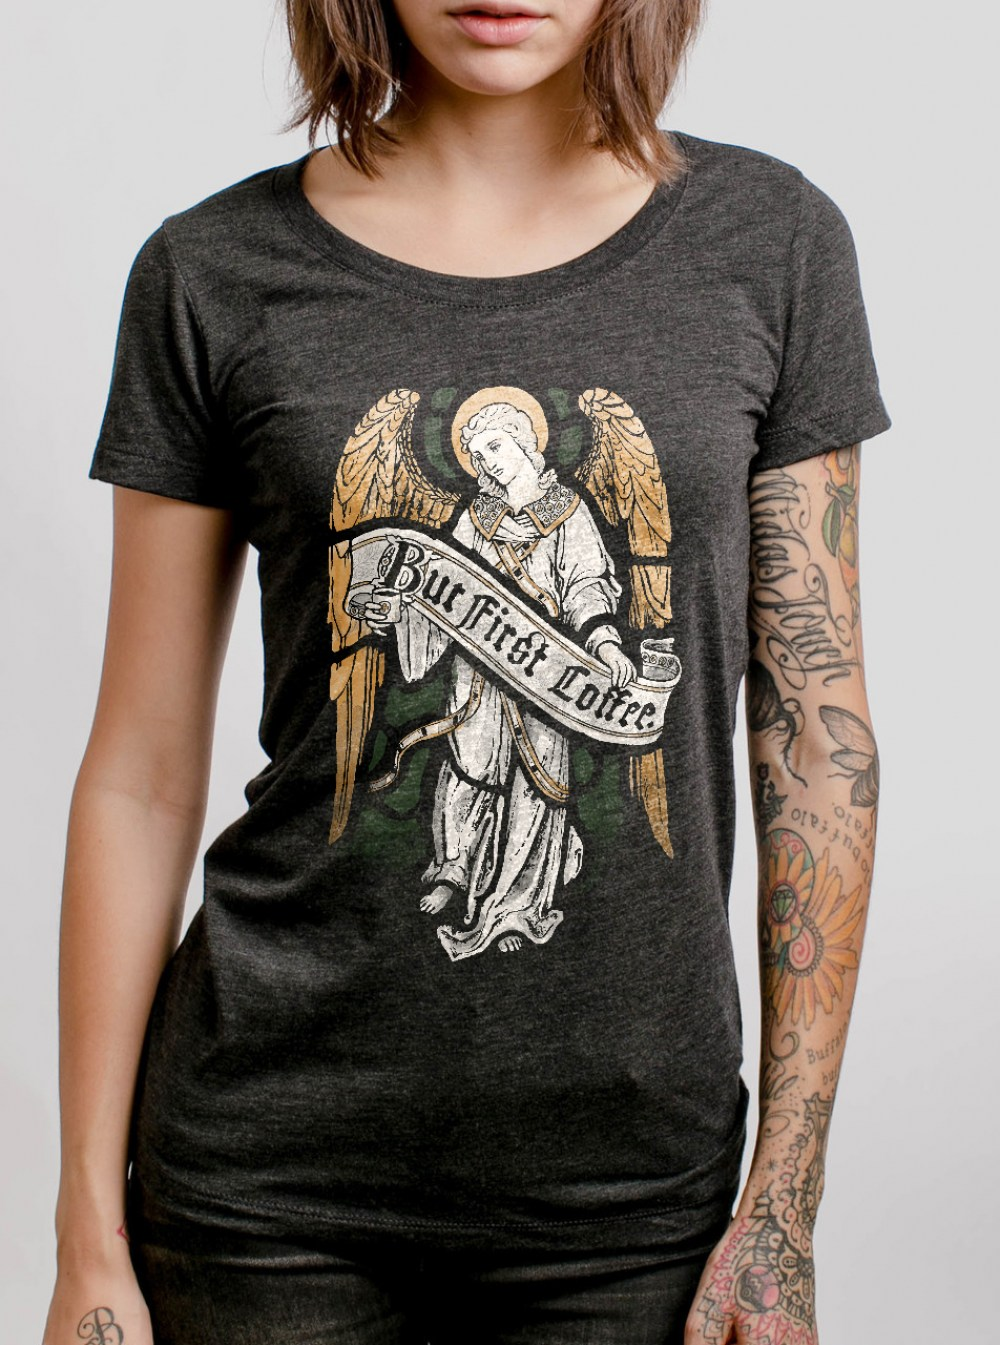 <dive><h1>Holy Coffee</h1>Threadless</dive>